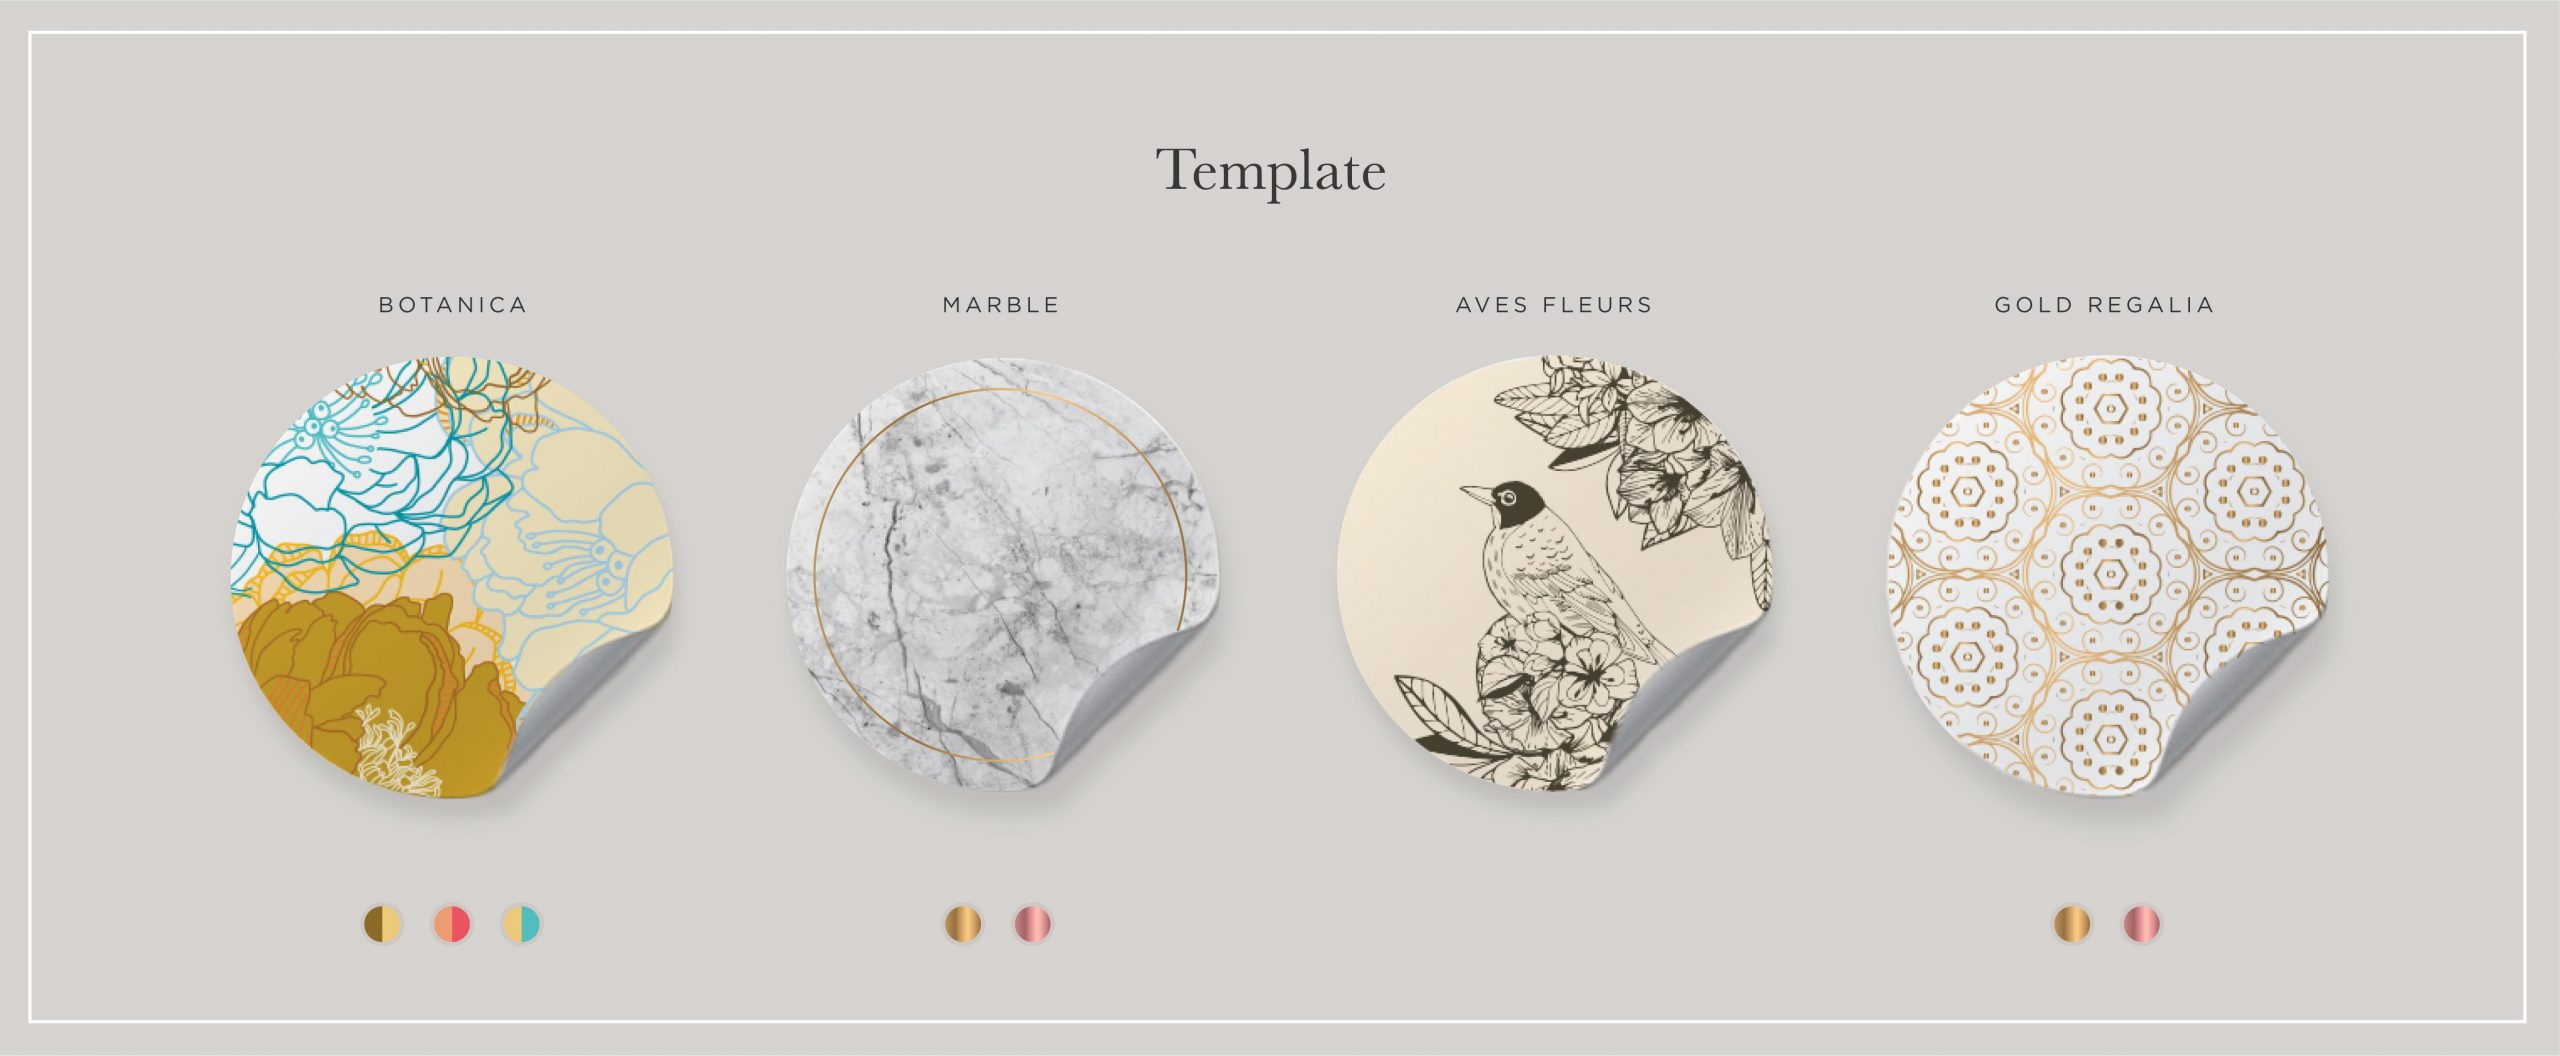 Sample Design Templates